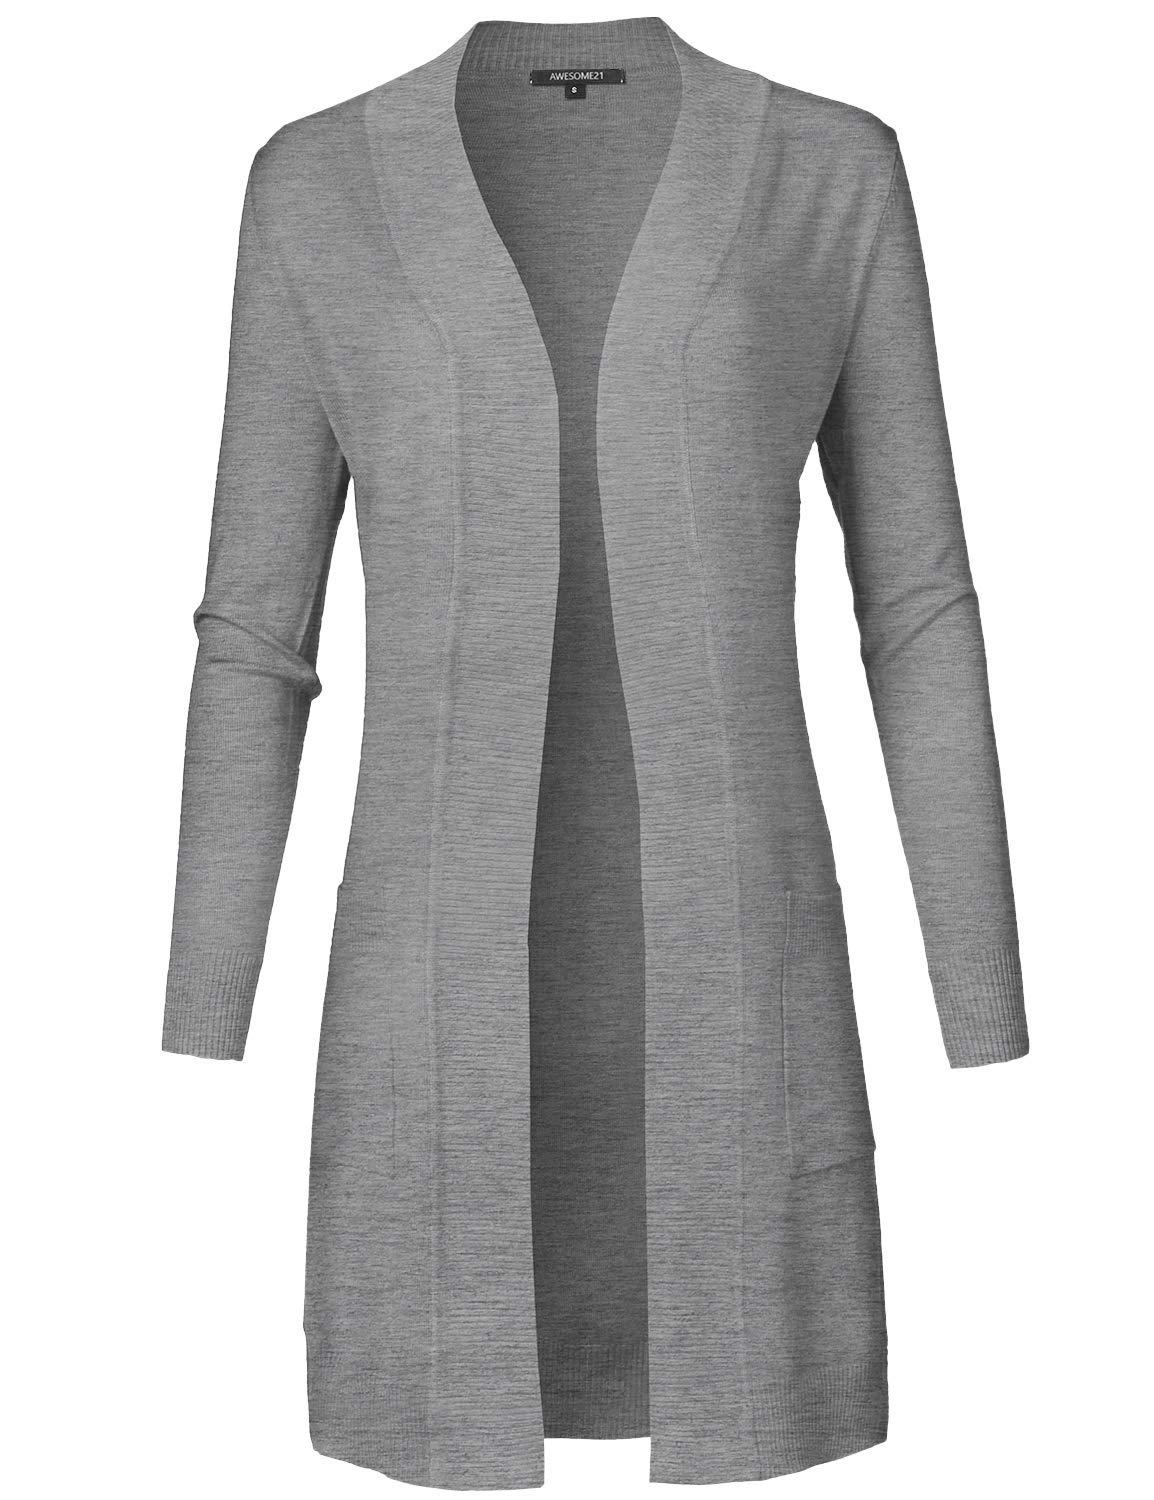 Awesome21 Solid Soft Stretch Long Sleeve Open Front Knit Cardigan Heather Gray S